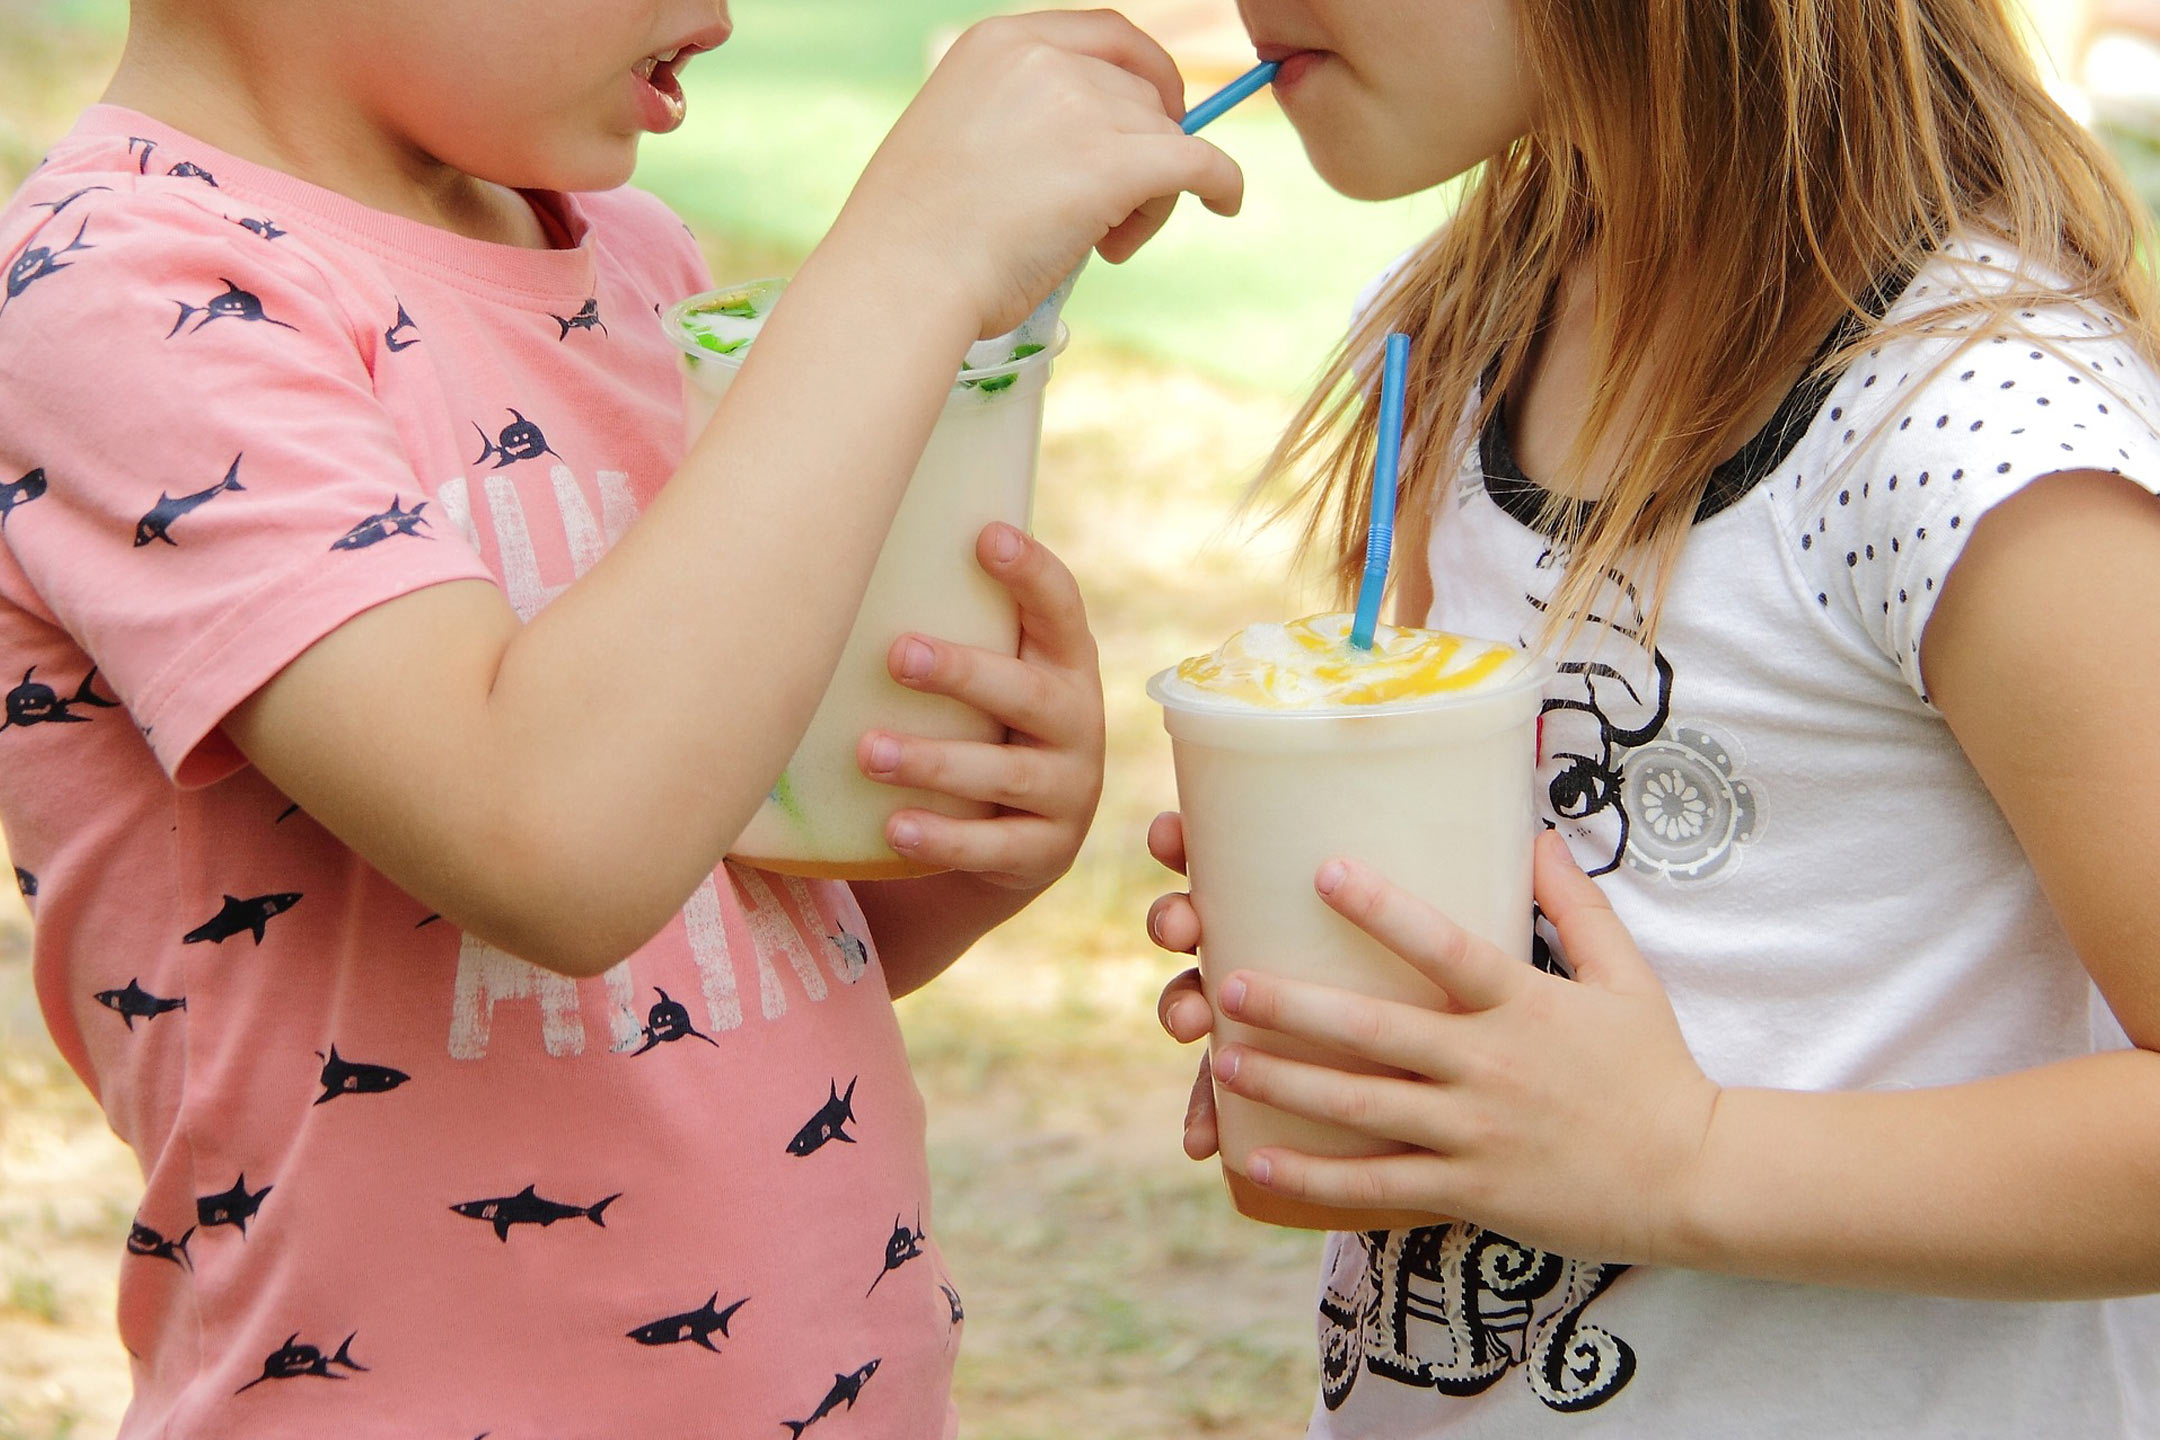 children-drinking-frappes2160